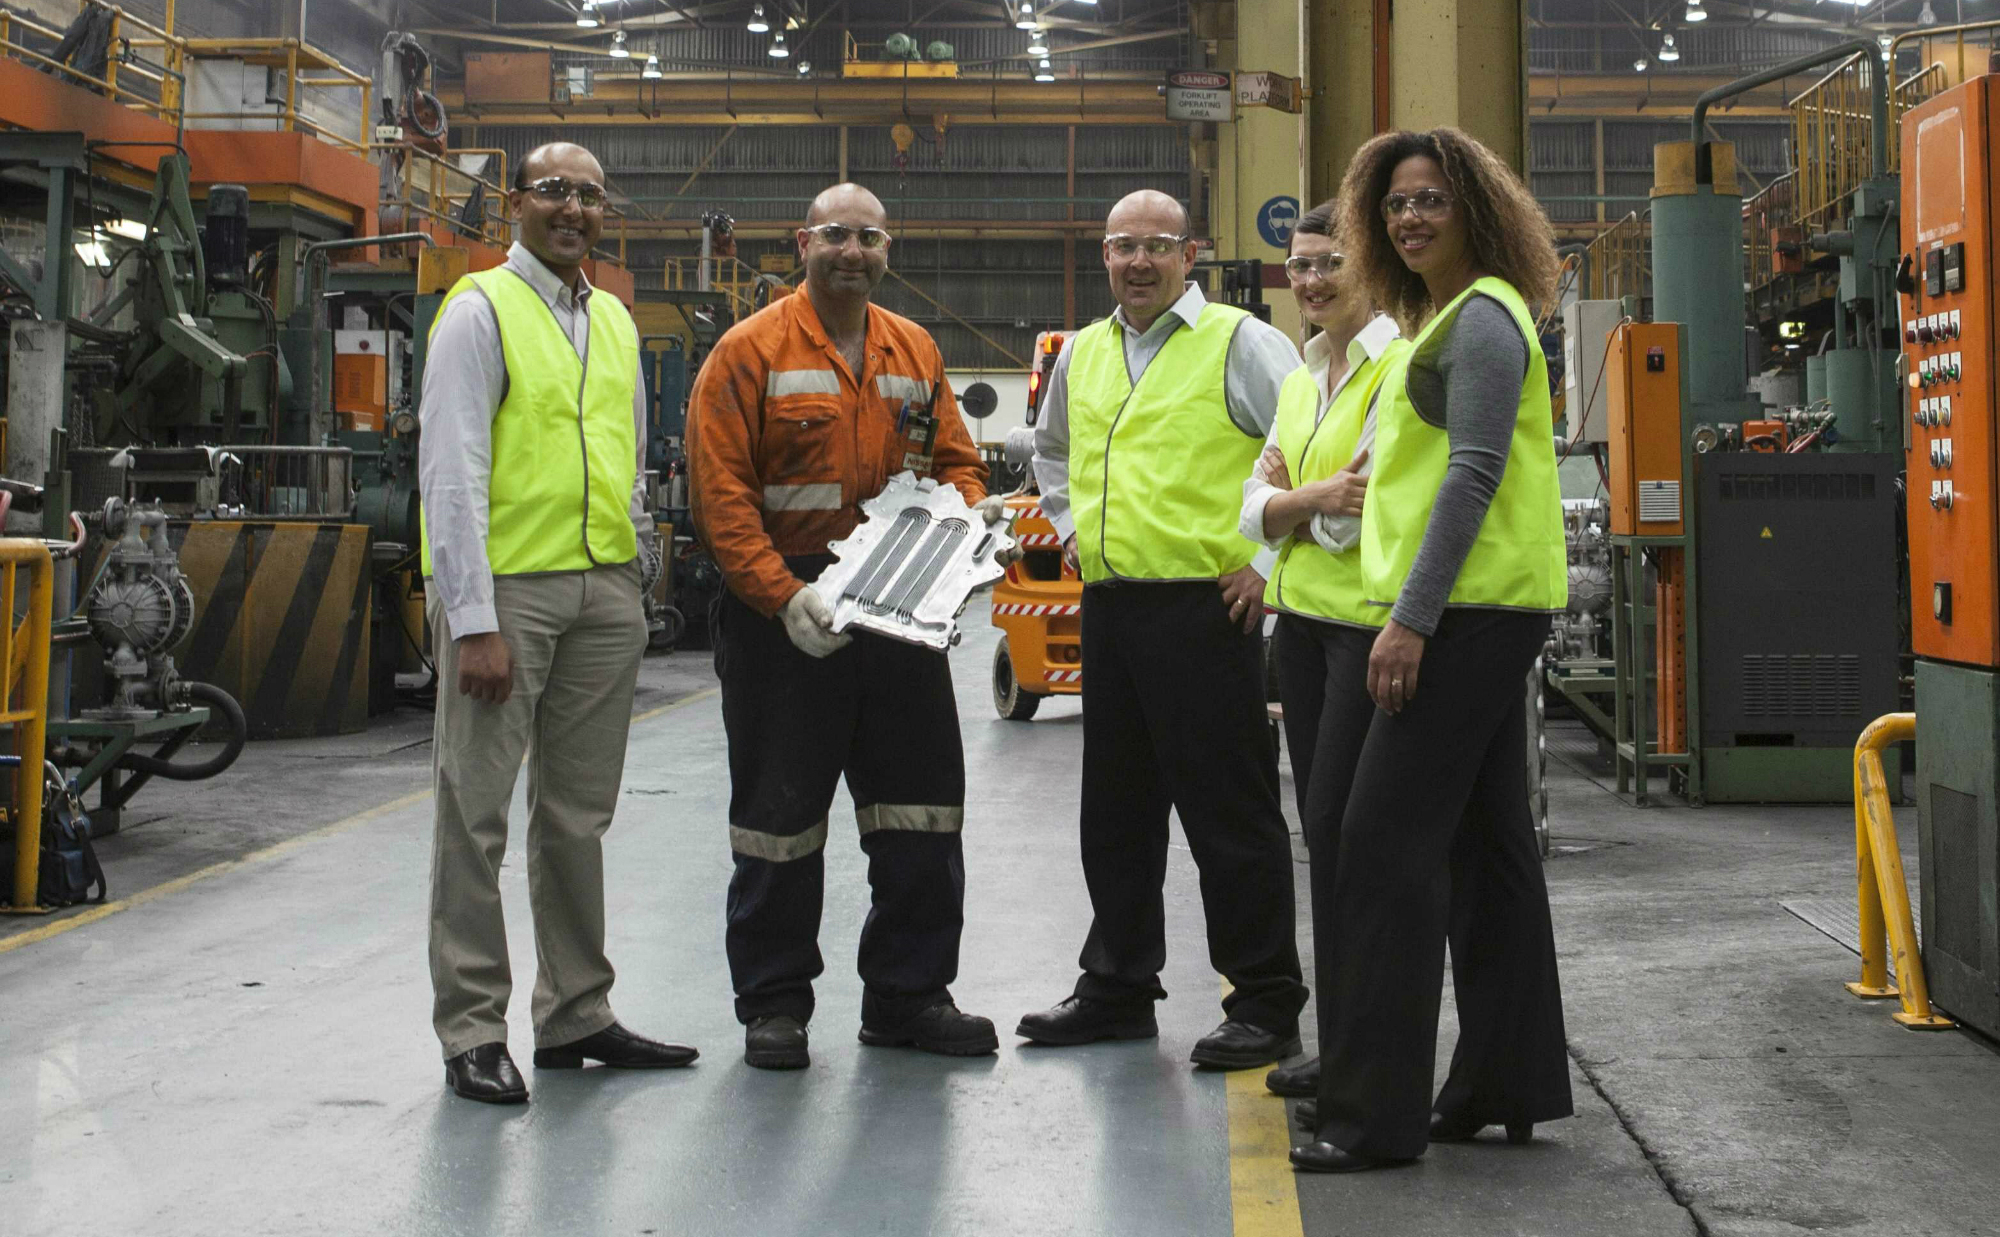 CASTvac crew: Nissan and CSIRO worked together to bring down costs and secure jobs beyond 2020.